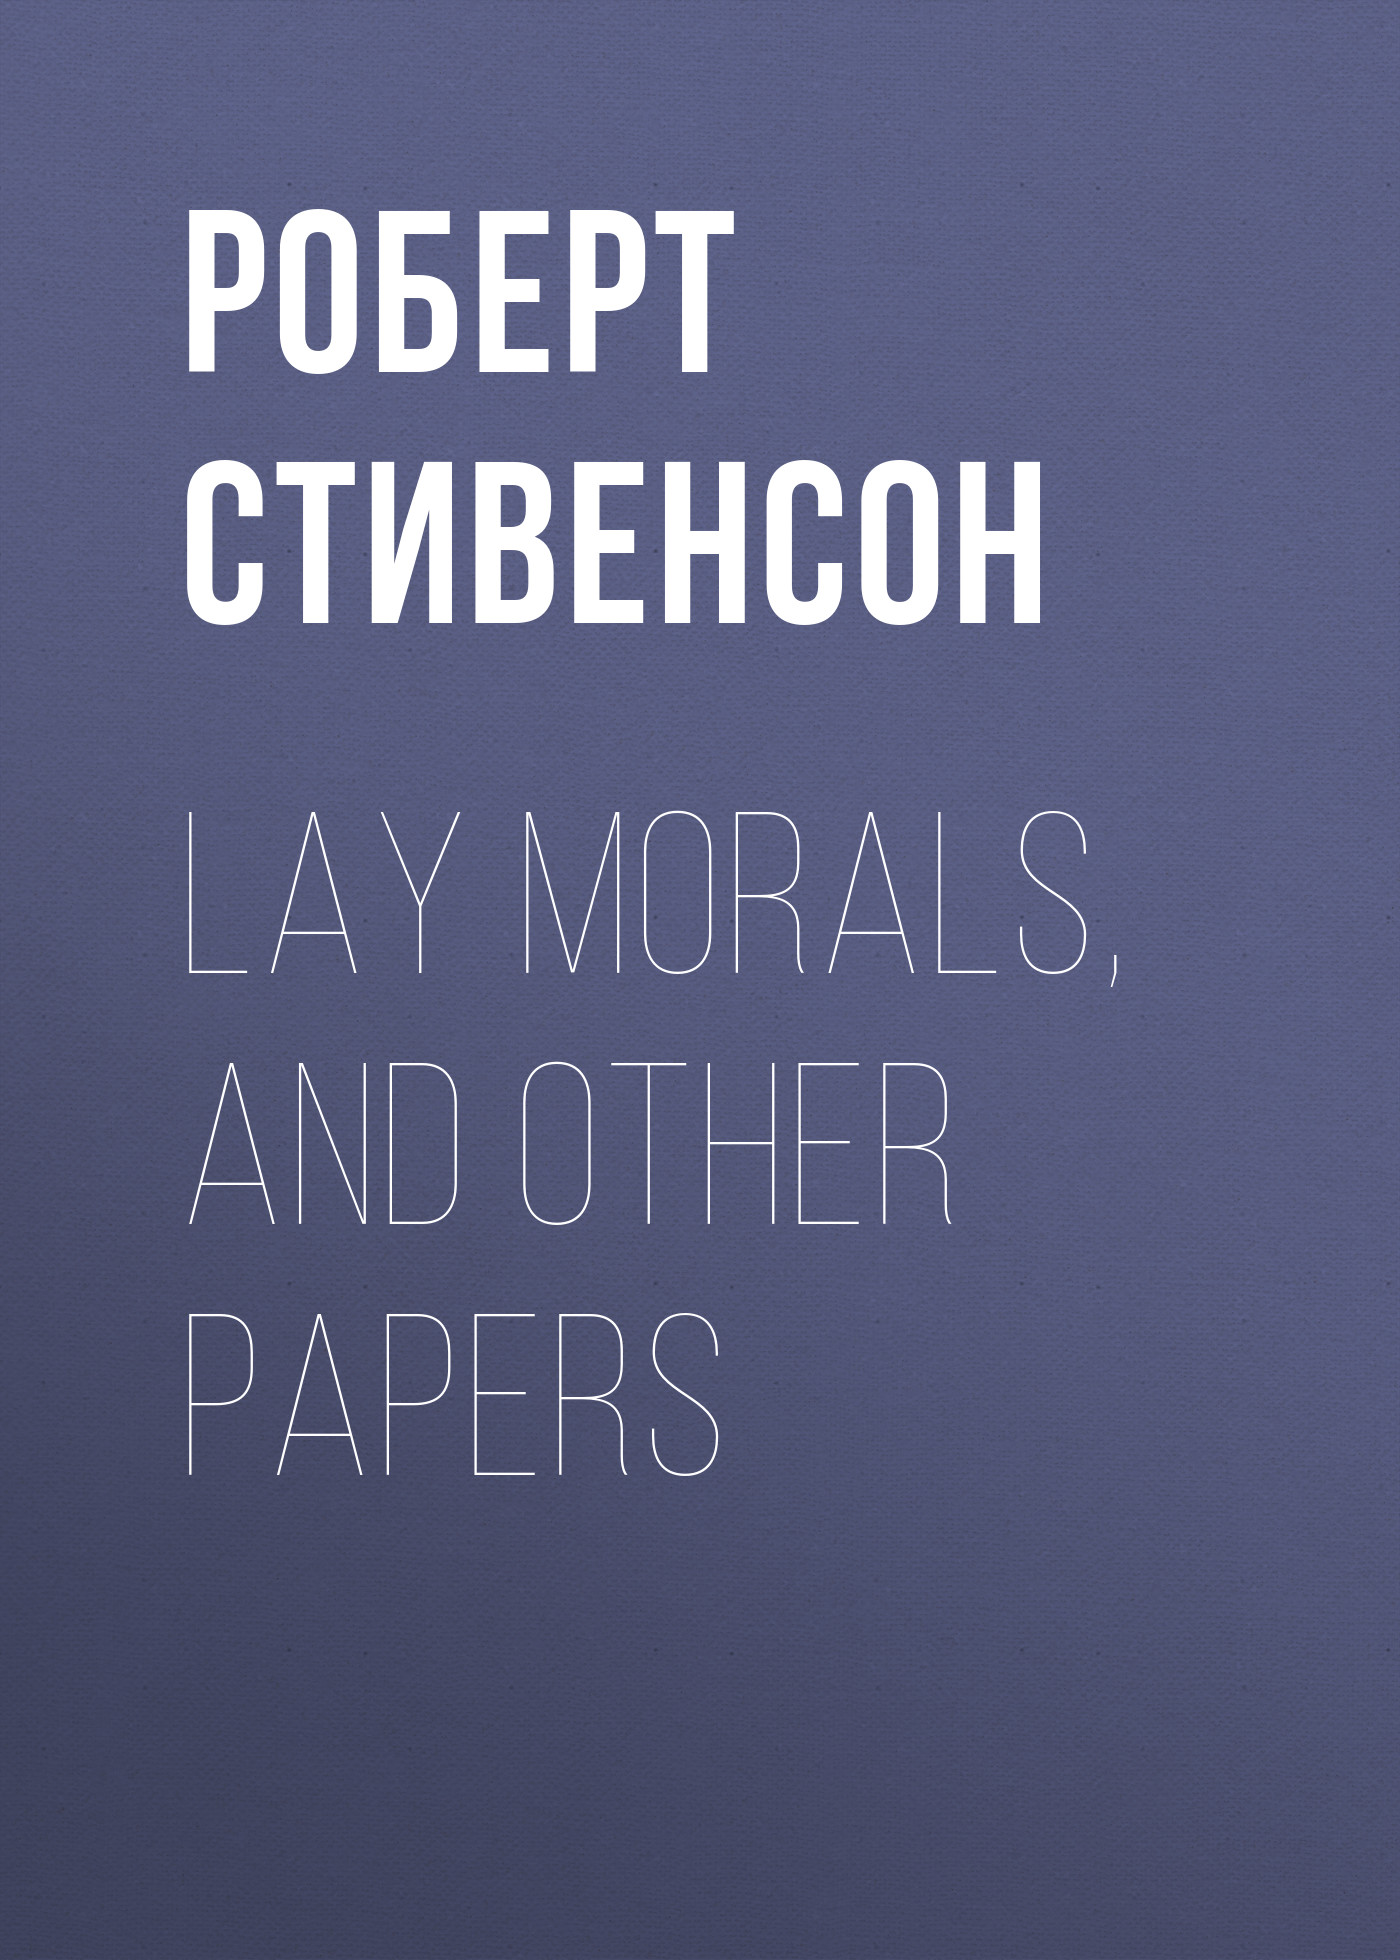 Фото - Роберт Льюис Стивенсон Lay Morals, and Other Papers j b mozley lectures and other theological papers